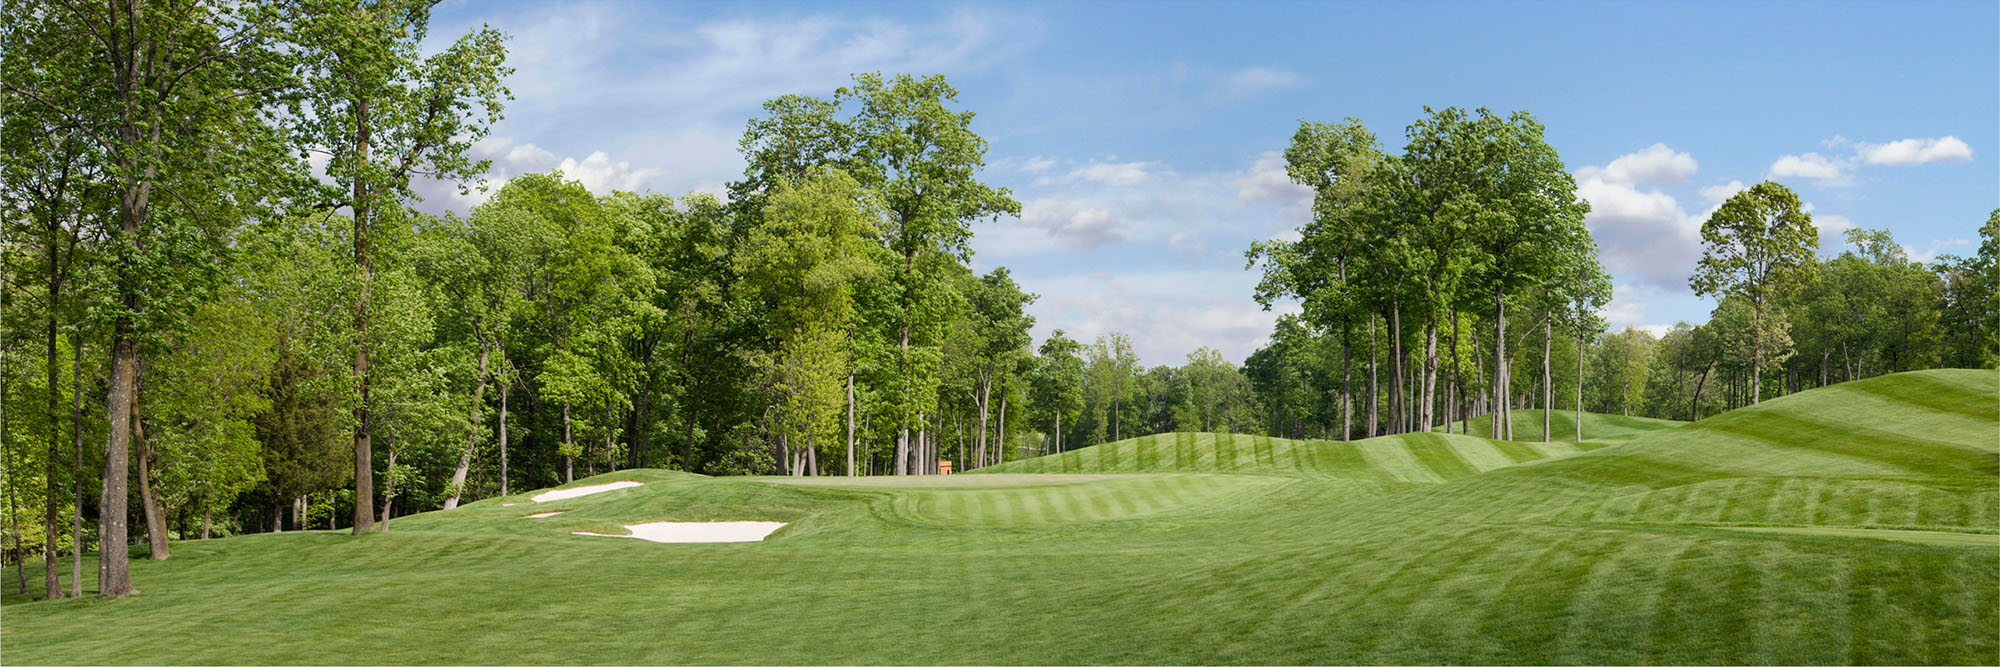 Golf Course Image - New Jersey National Golf Club No. 15